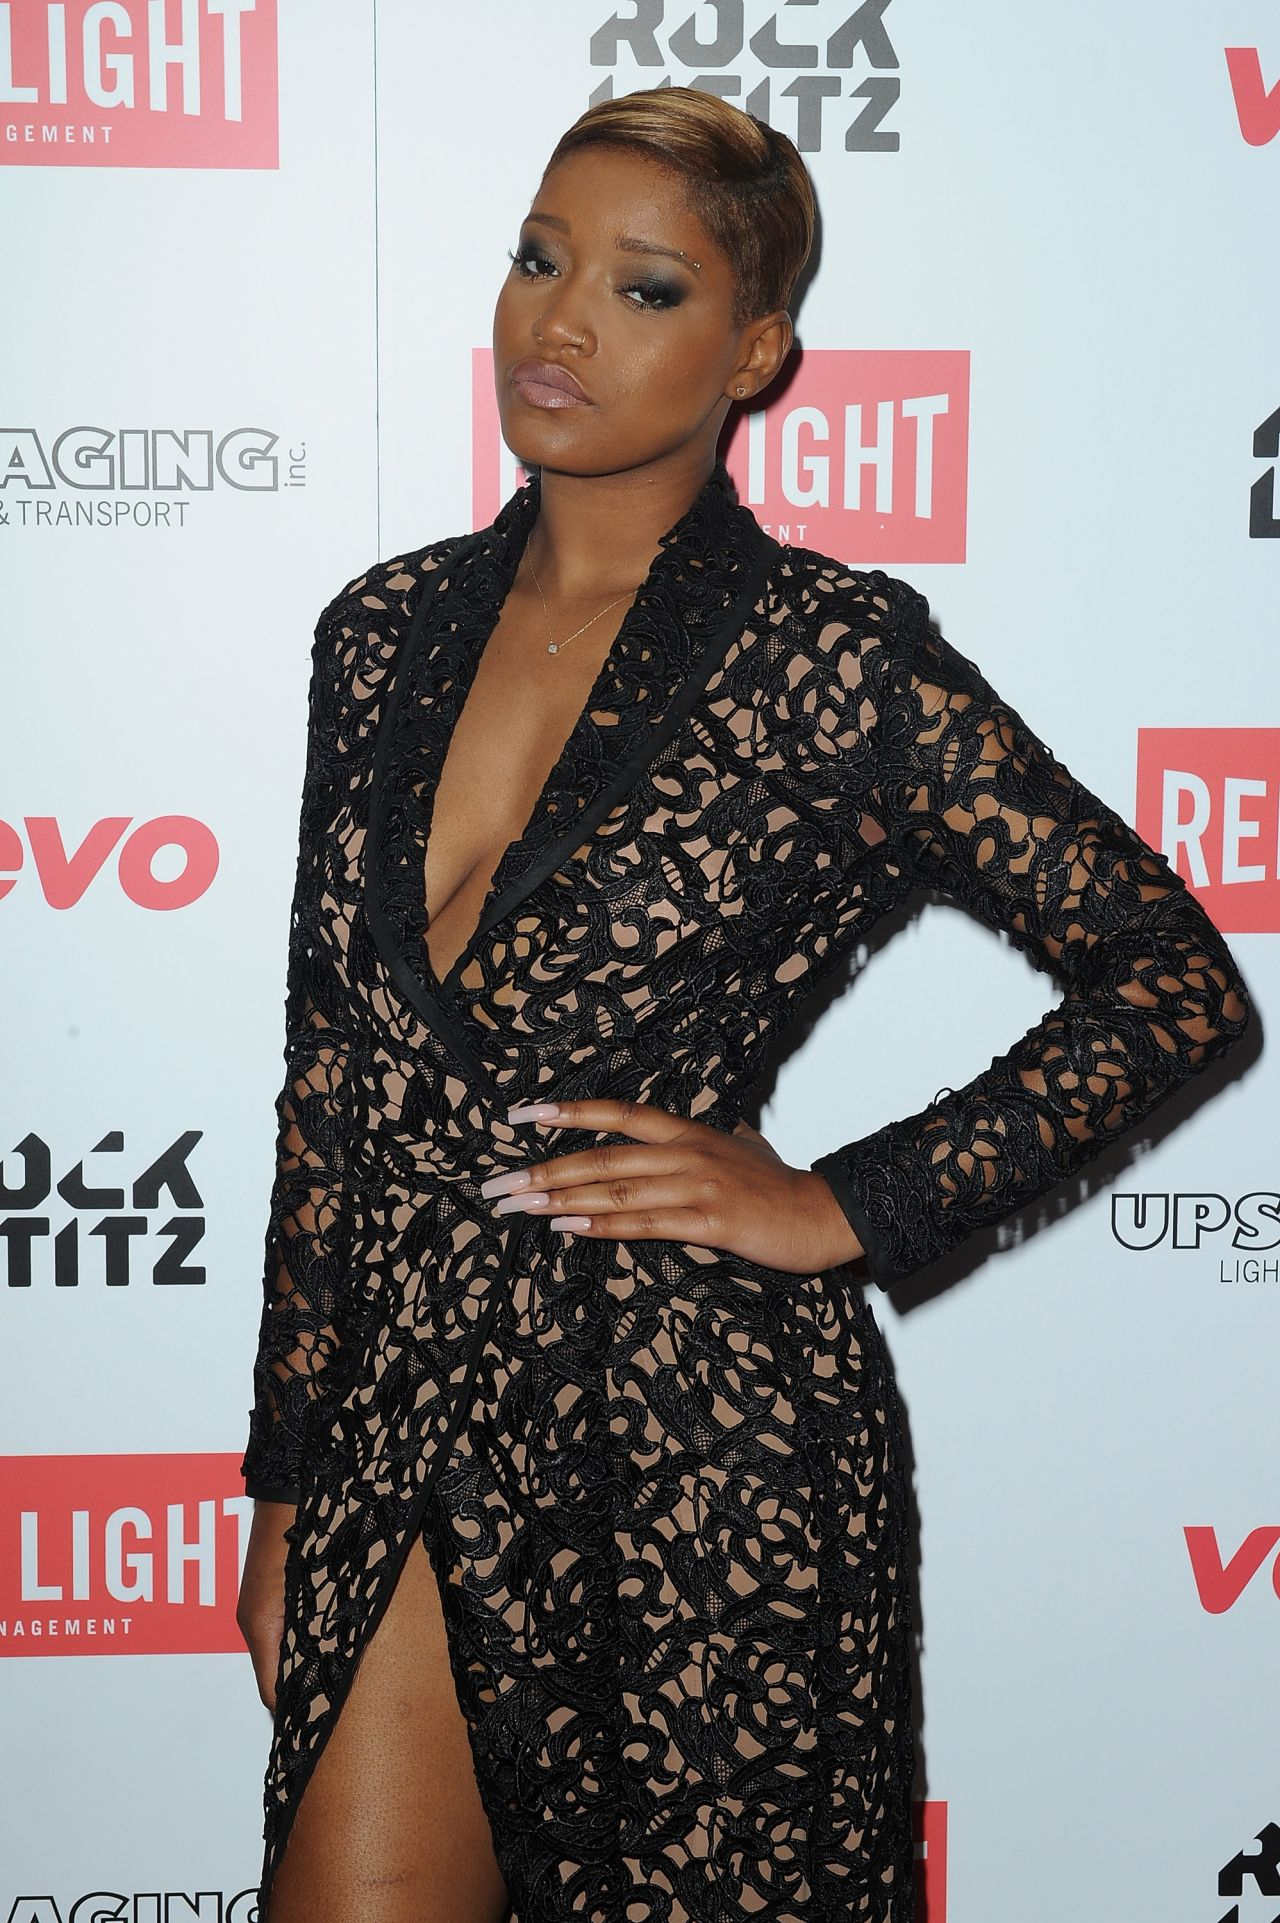 Keke Palmer - Red Light Management Grammys2015 After Party in Hollywood